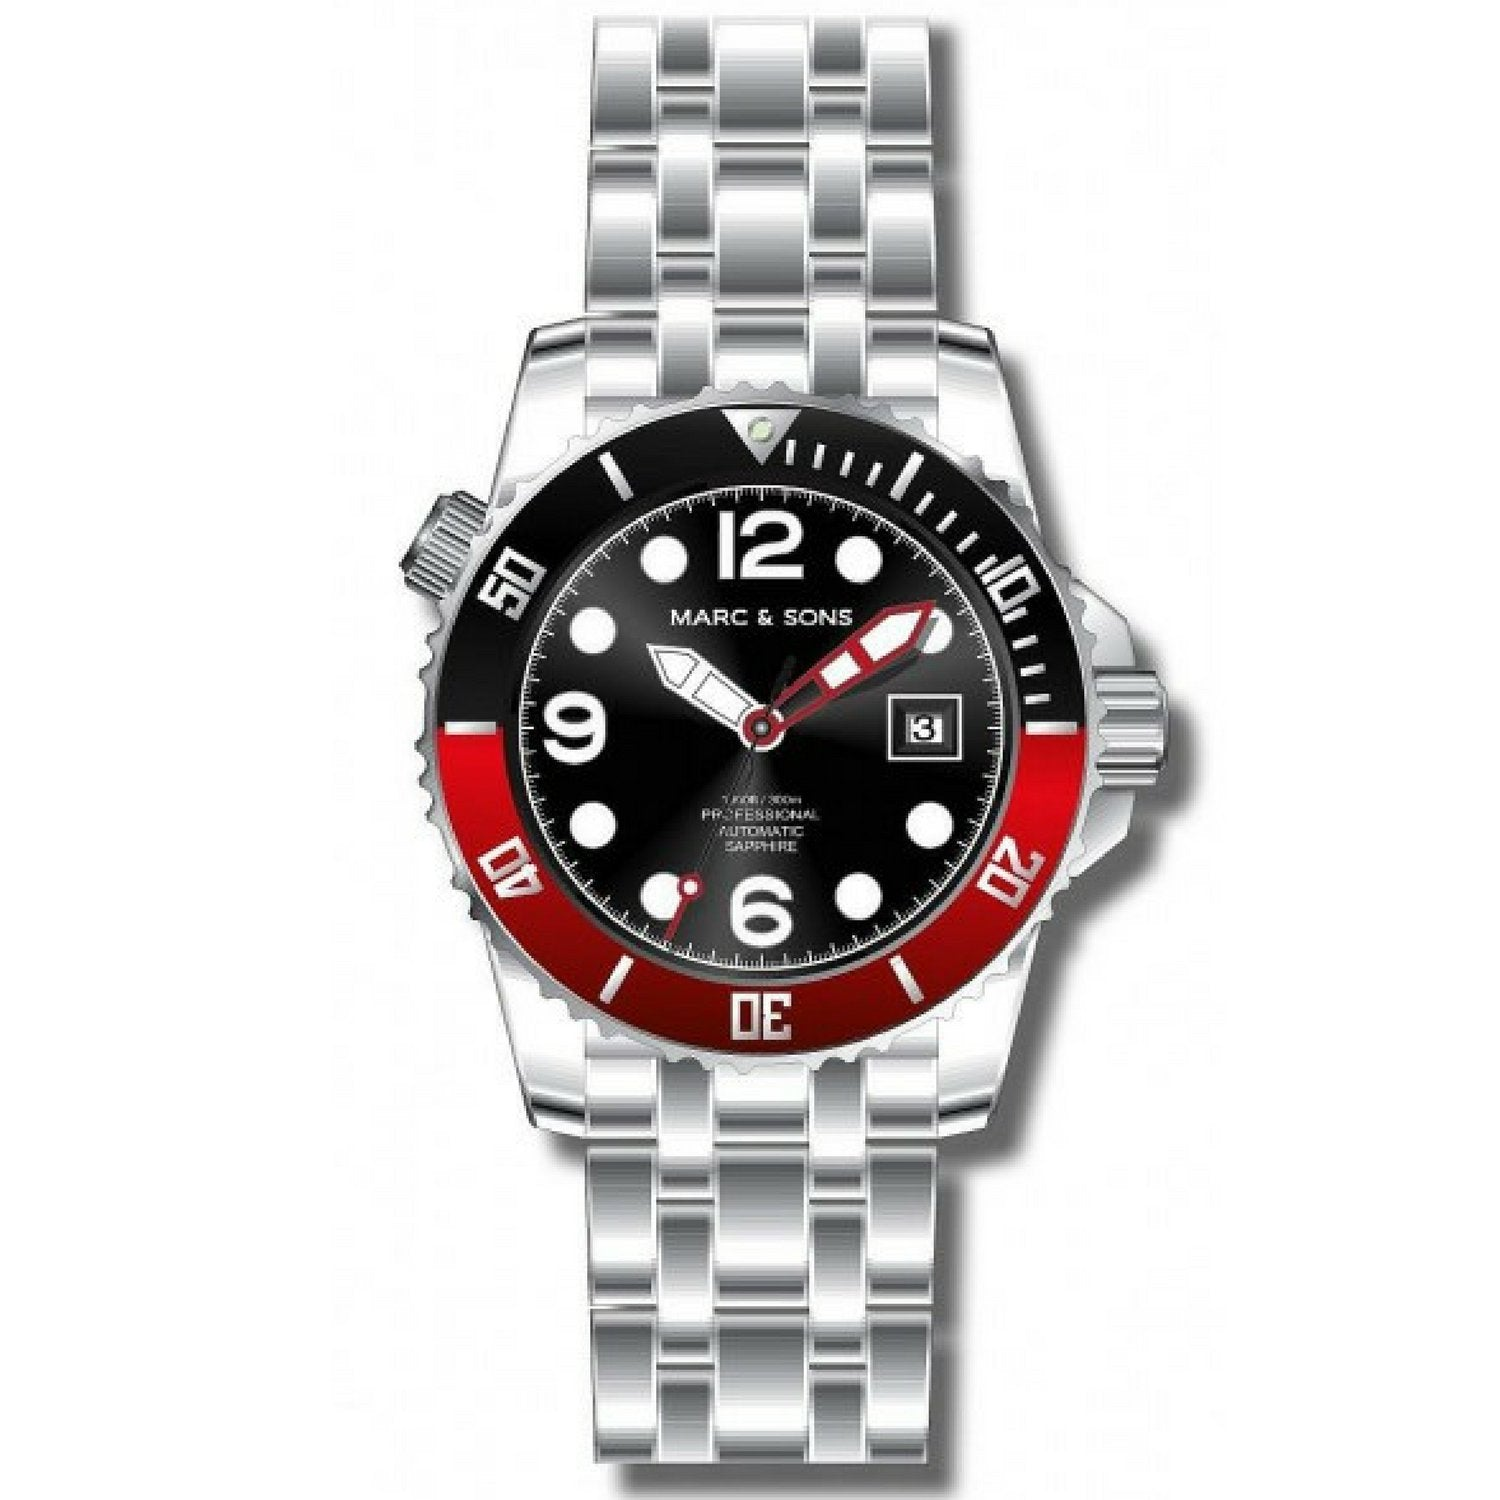 MARC & SONS 300M Professional automatic Diver watch MSD-036